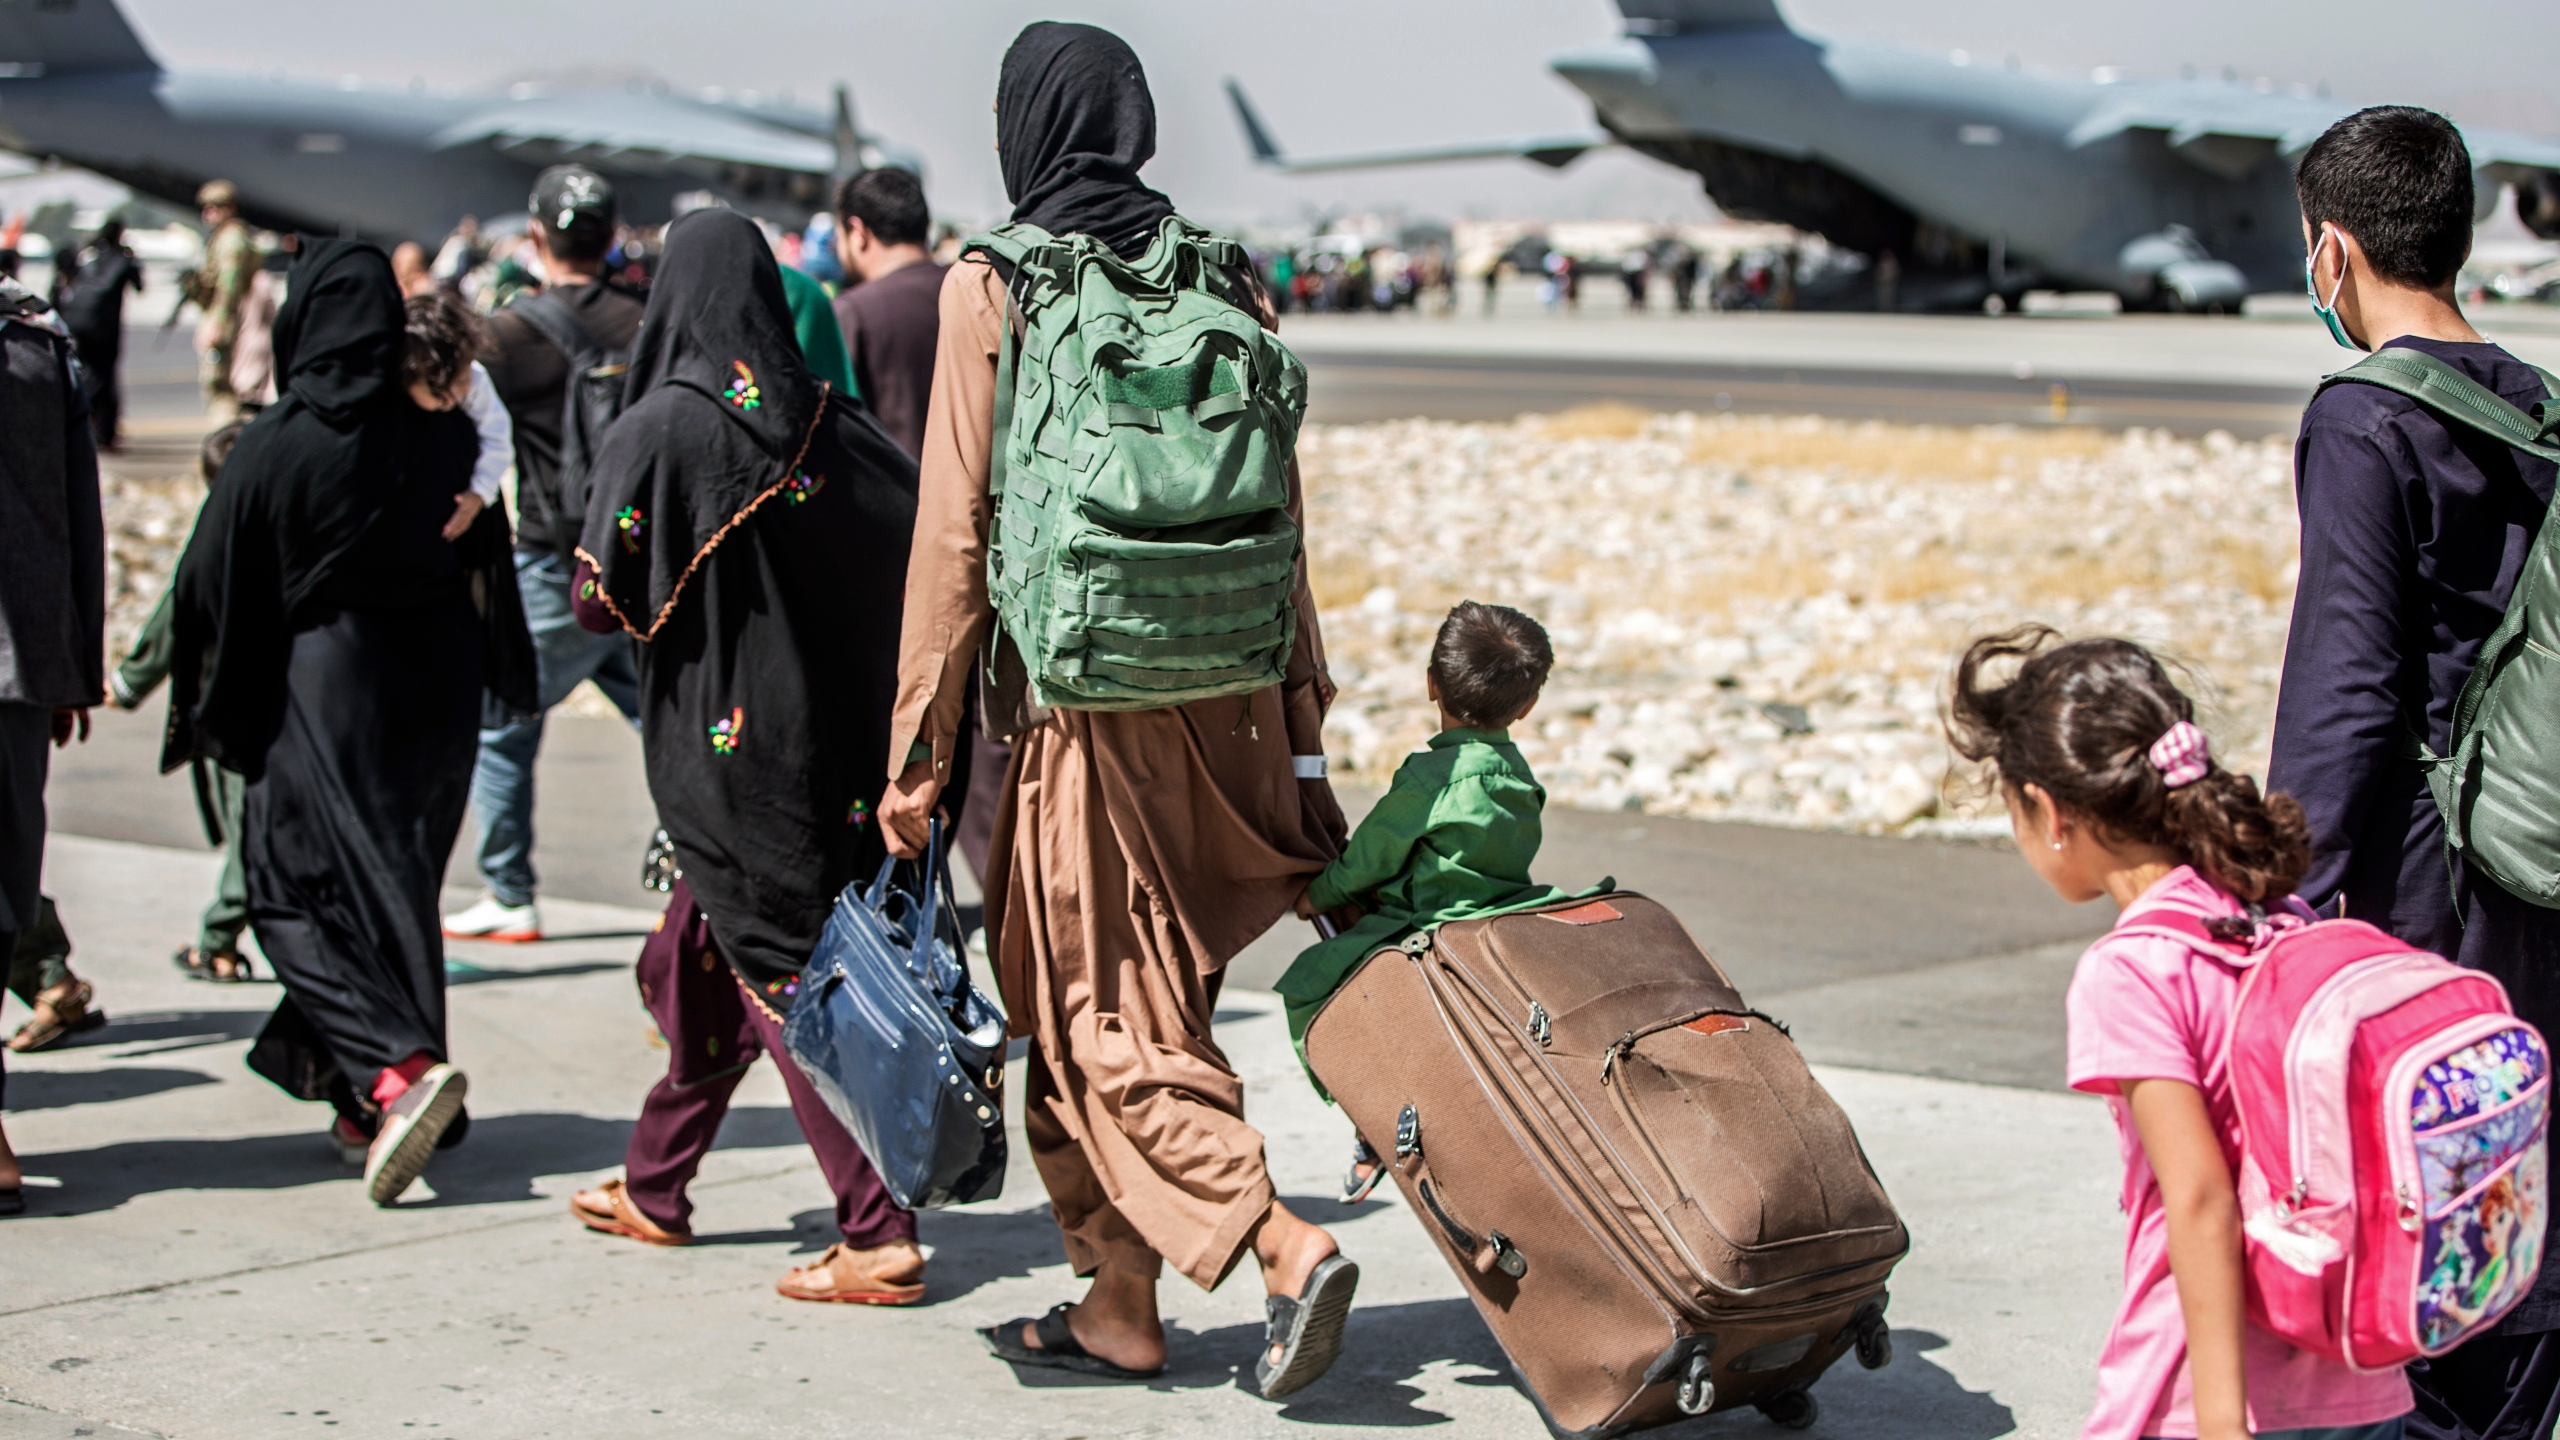 In this Aug. 24, 2021, file photo, provided by the U.S. Marine Corps, families walk towards their flight during ongoing evacuations at Hamid Karzai International Airport, in Kabul, Afghanistan. A school district in a San Diego suburb that is home to a large refugee population says many of its families who had taken summer trips to Afghanistan to see their relatives have gotten stuck there with the chaos following the withdrawal of U.S. troops. (Sgt. Samuel Ruiz/U.S. Marine Corps via AP, File)